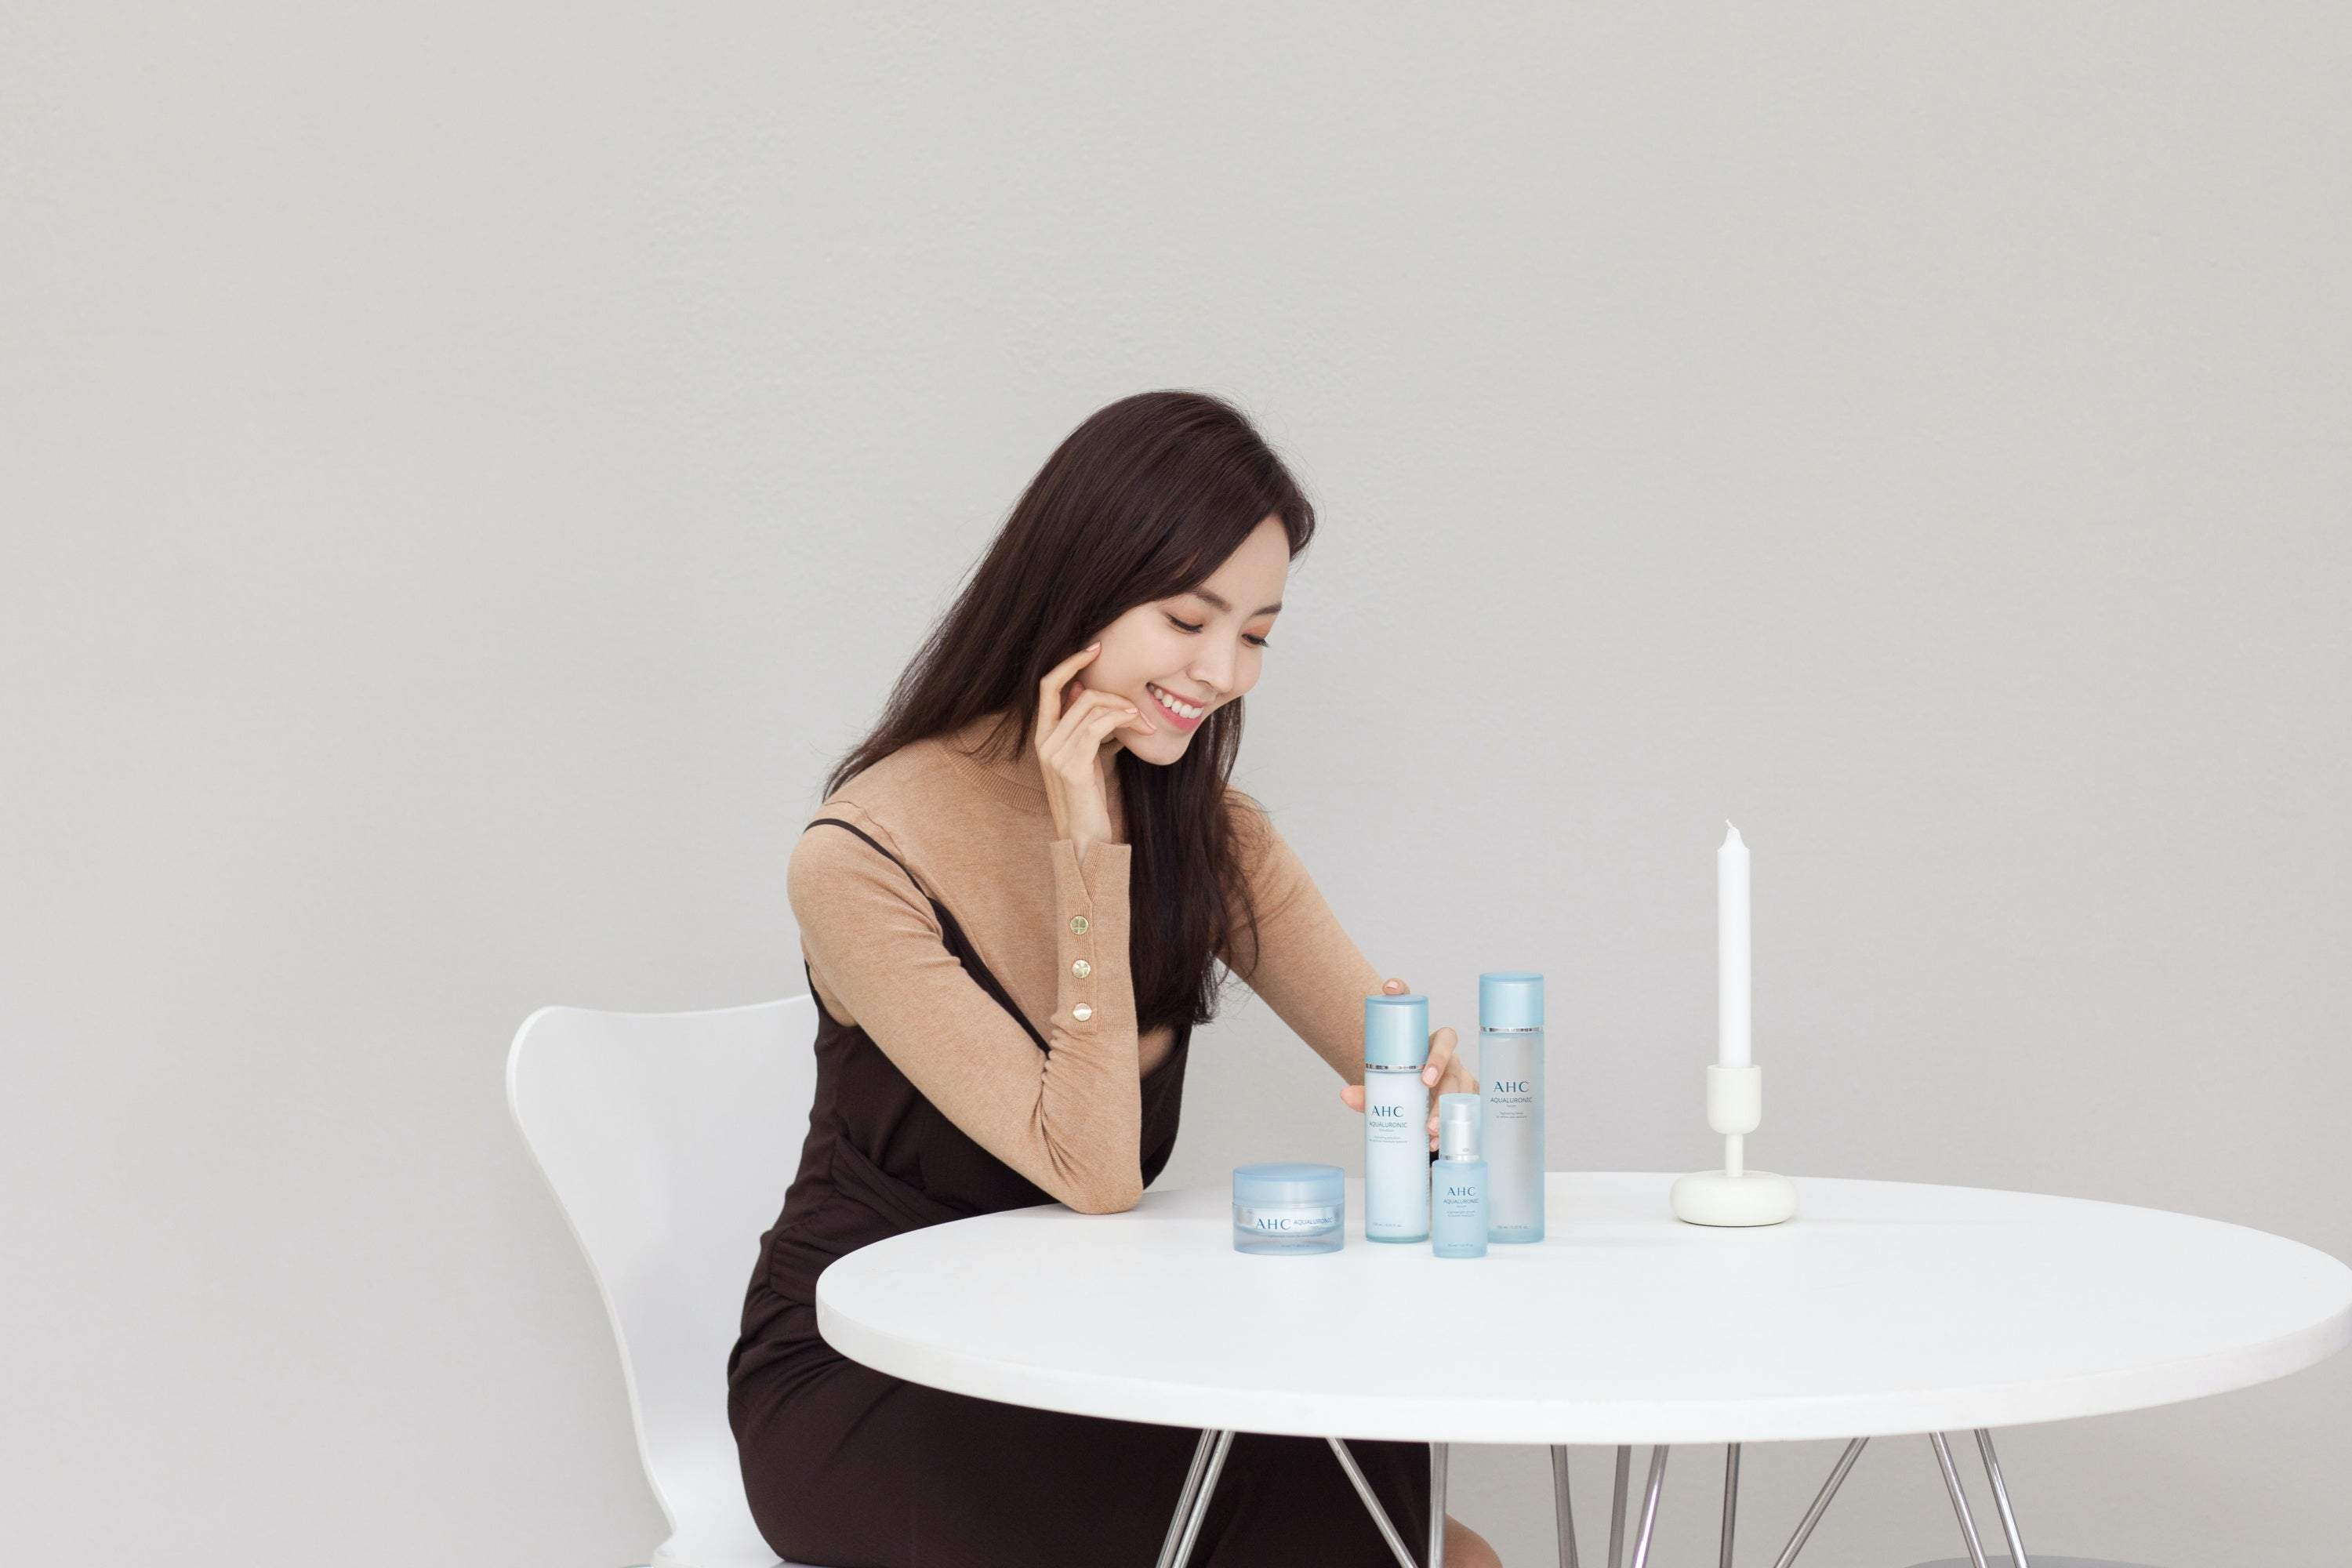 Asian woman sitting in table with AHC Aqualuronic series